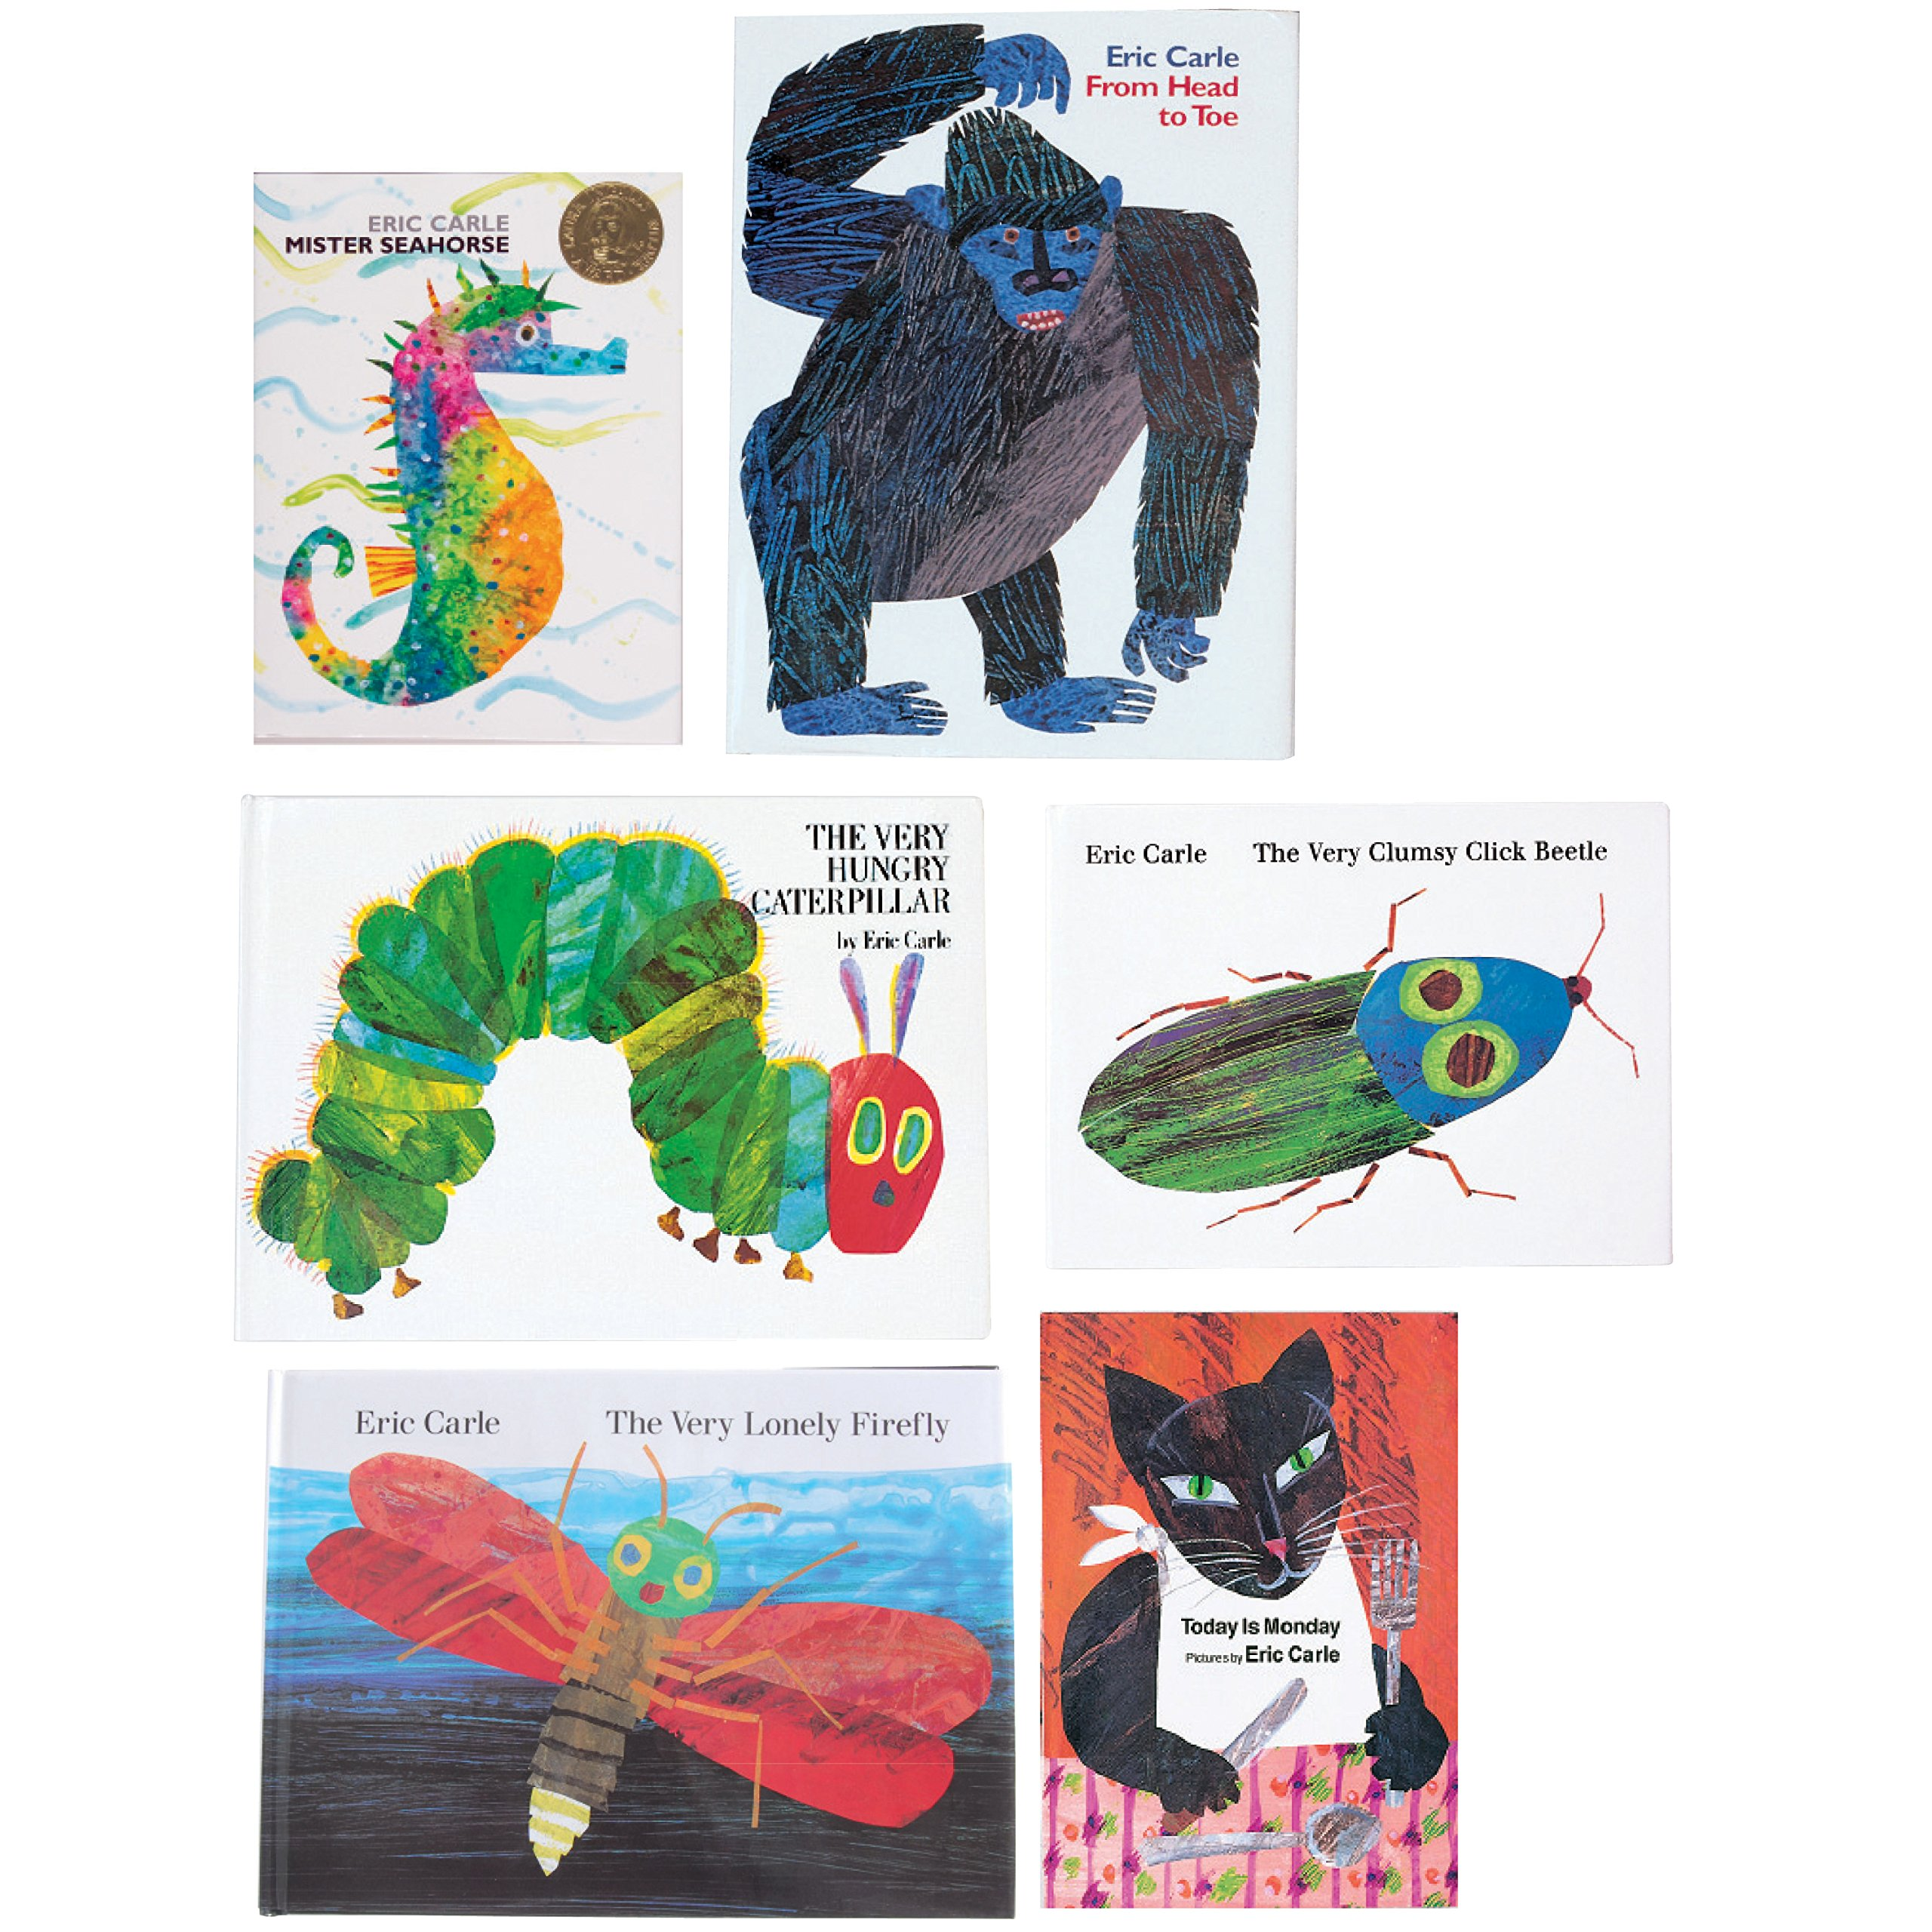 Constructive Playthings BOK-103 Eric Carle Collection #1 Hardcover Books, Grade: Kindergarten to 1, Set of 6